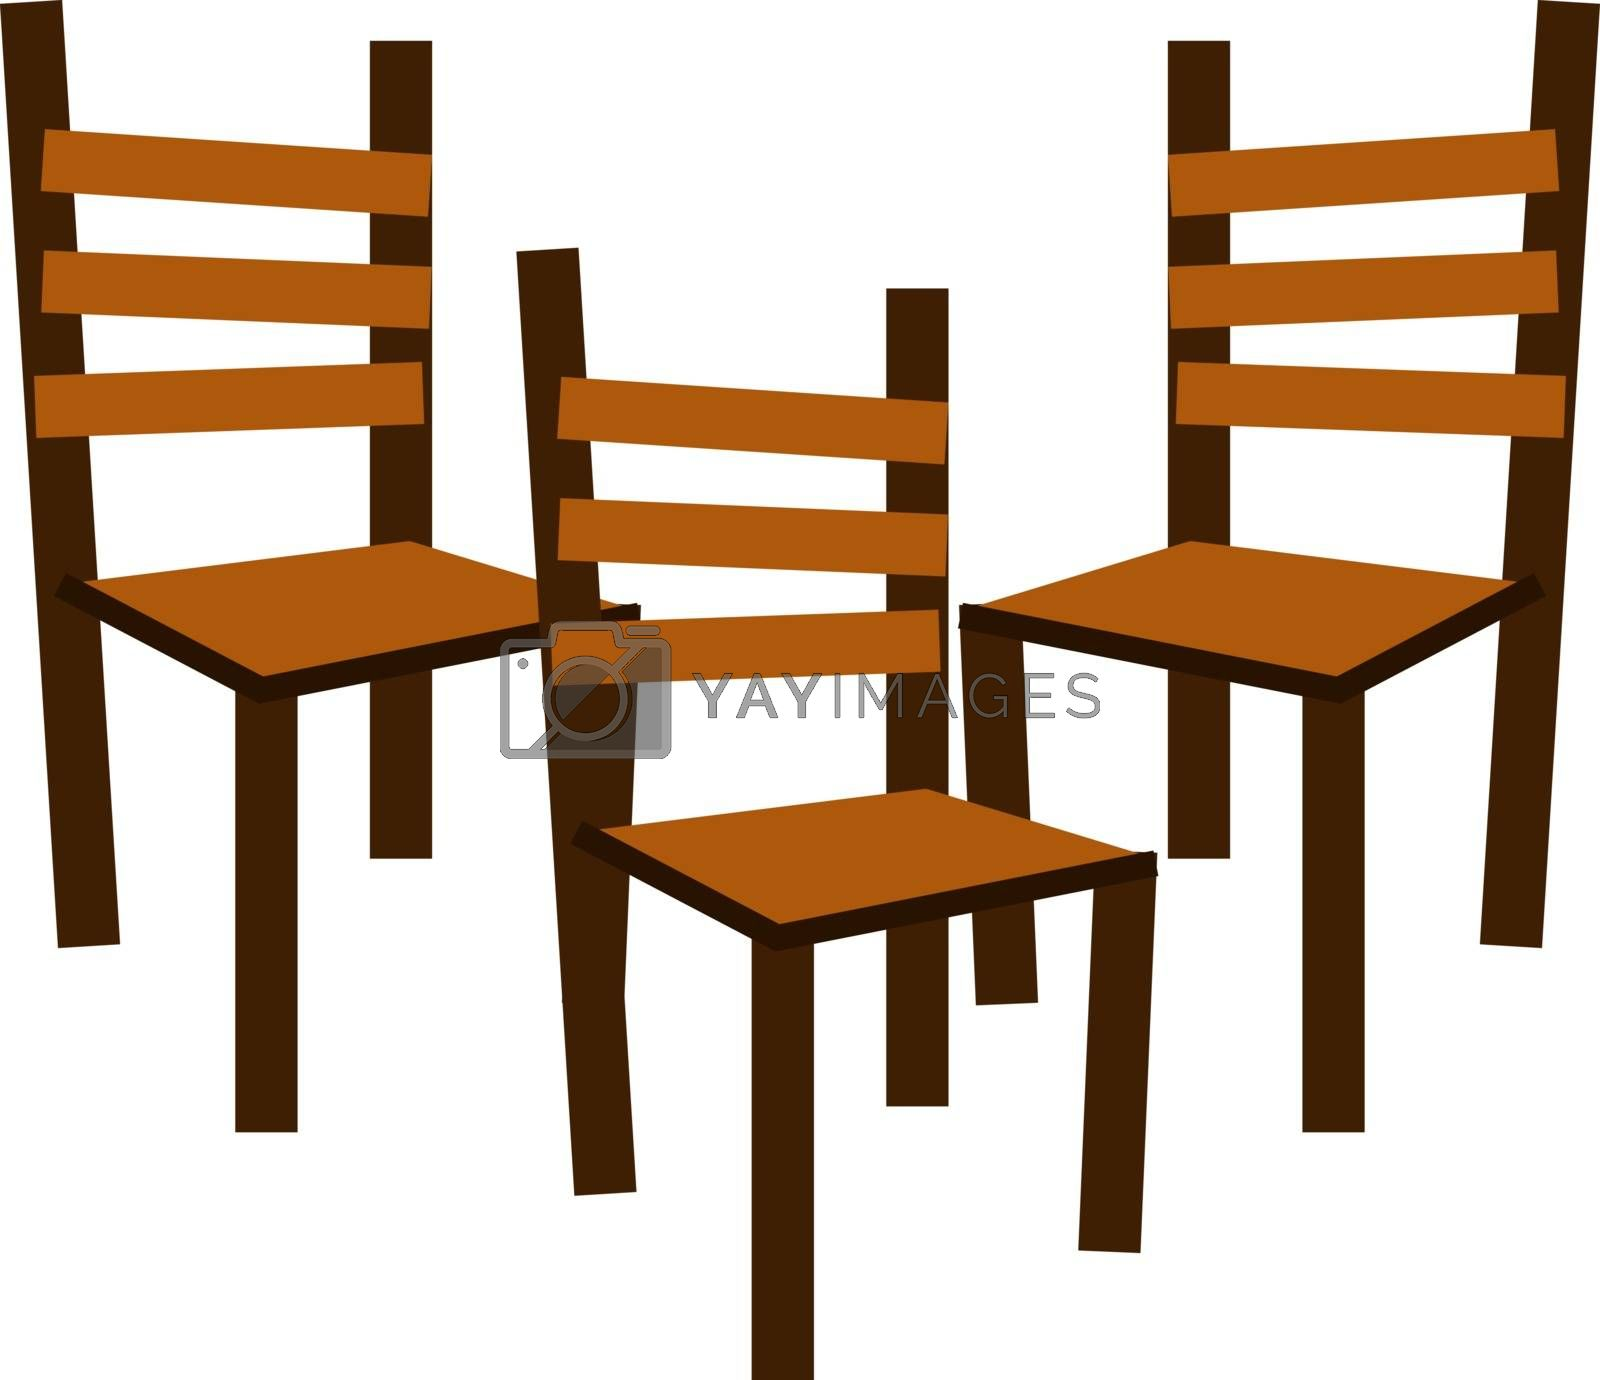 Chairs, illustration, vector on white background.